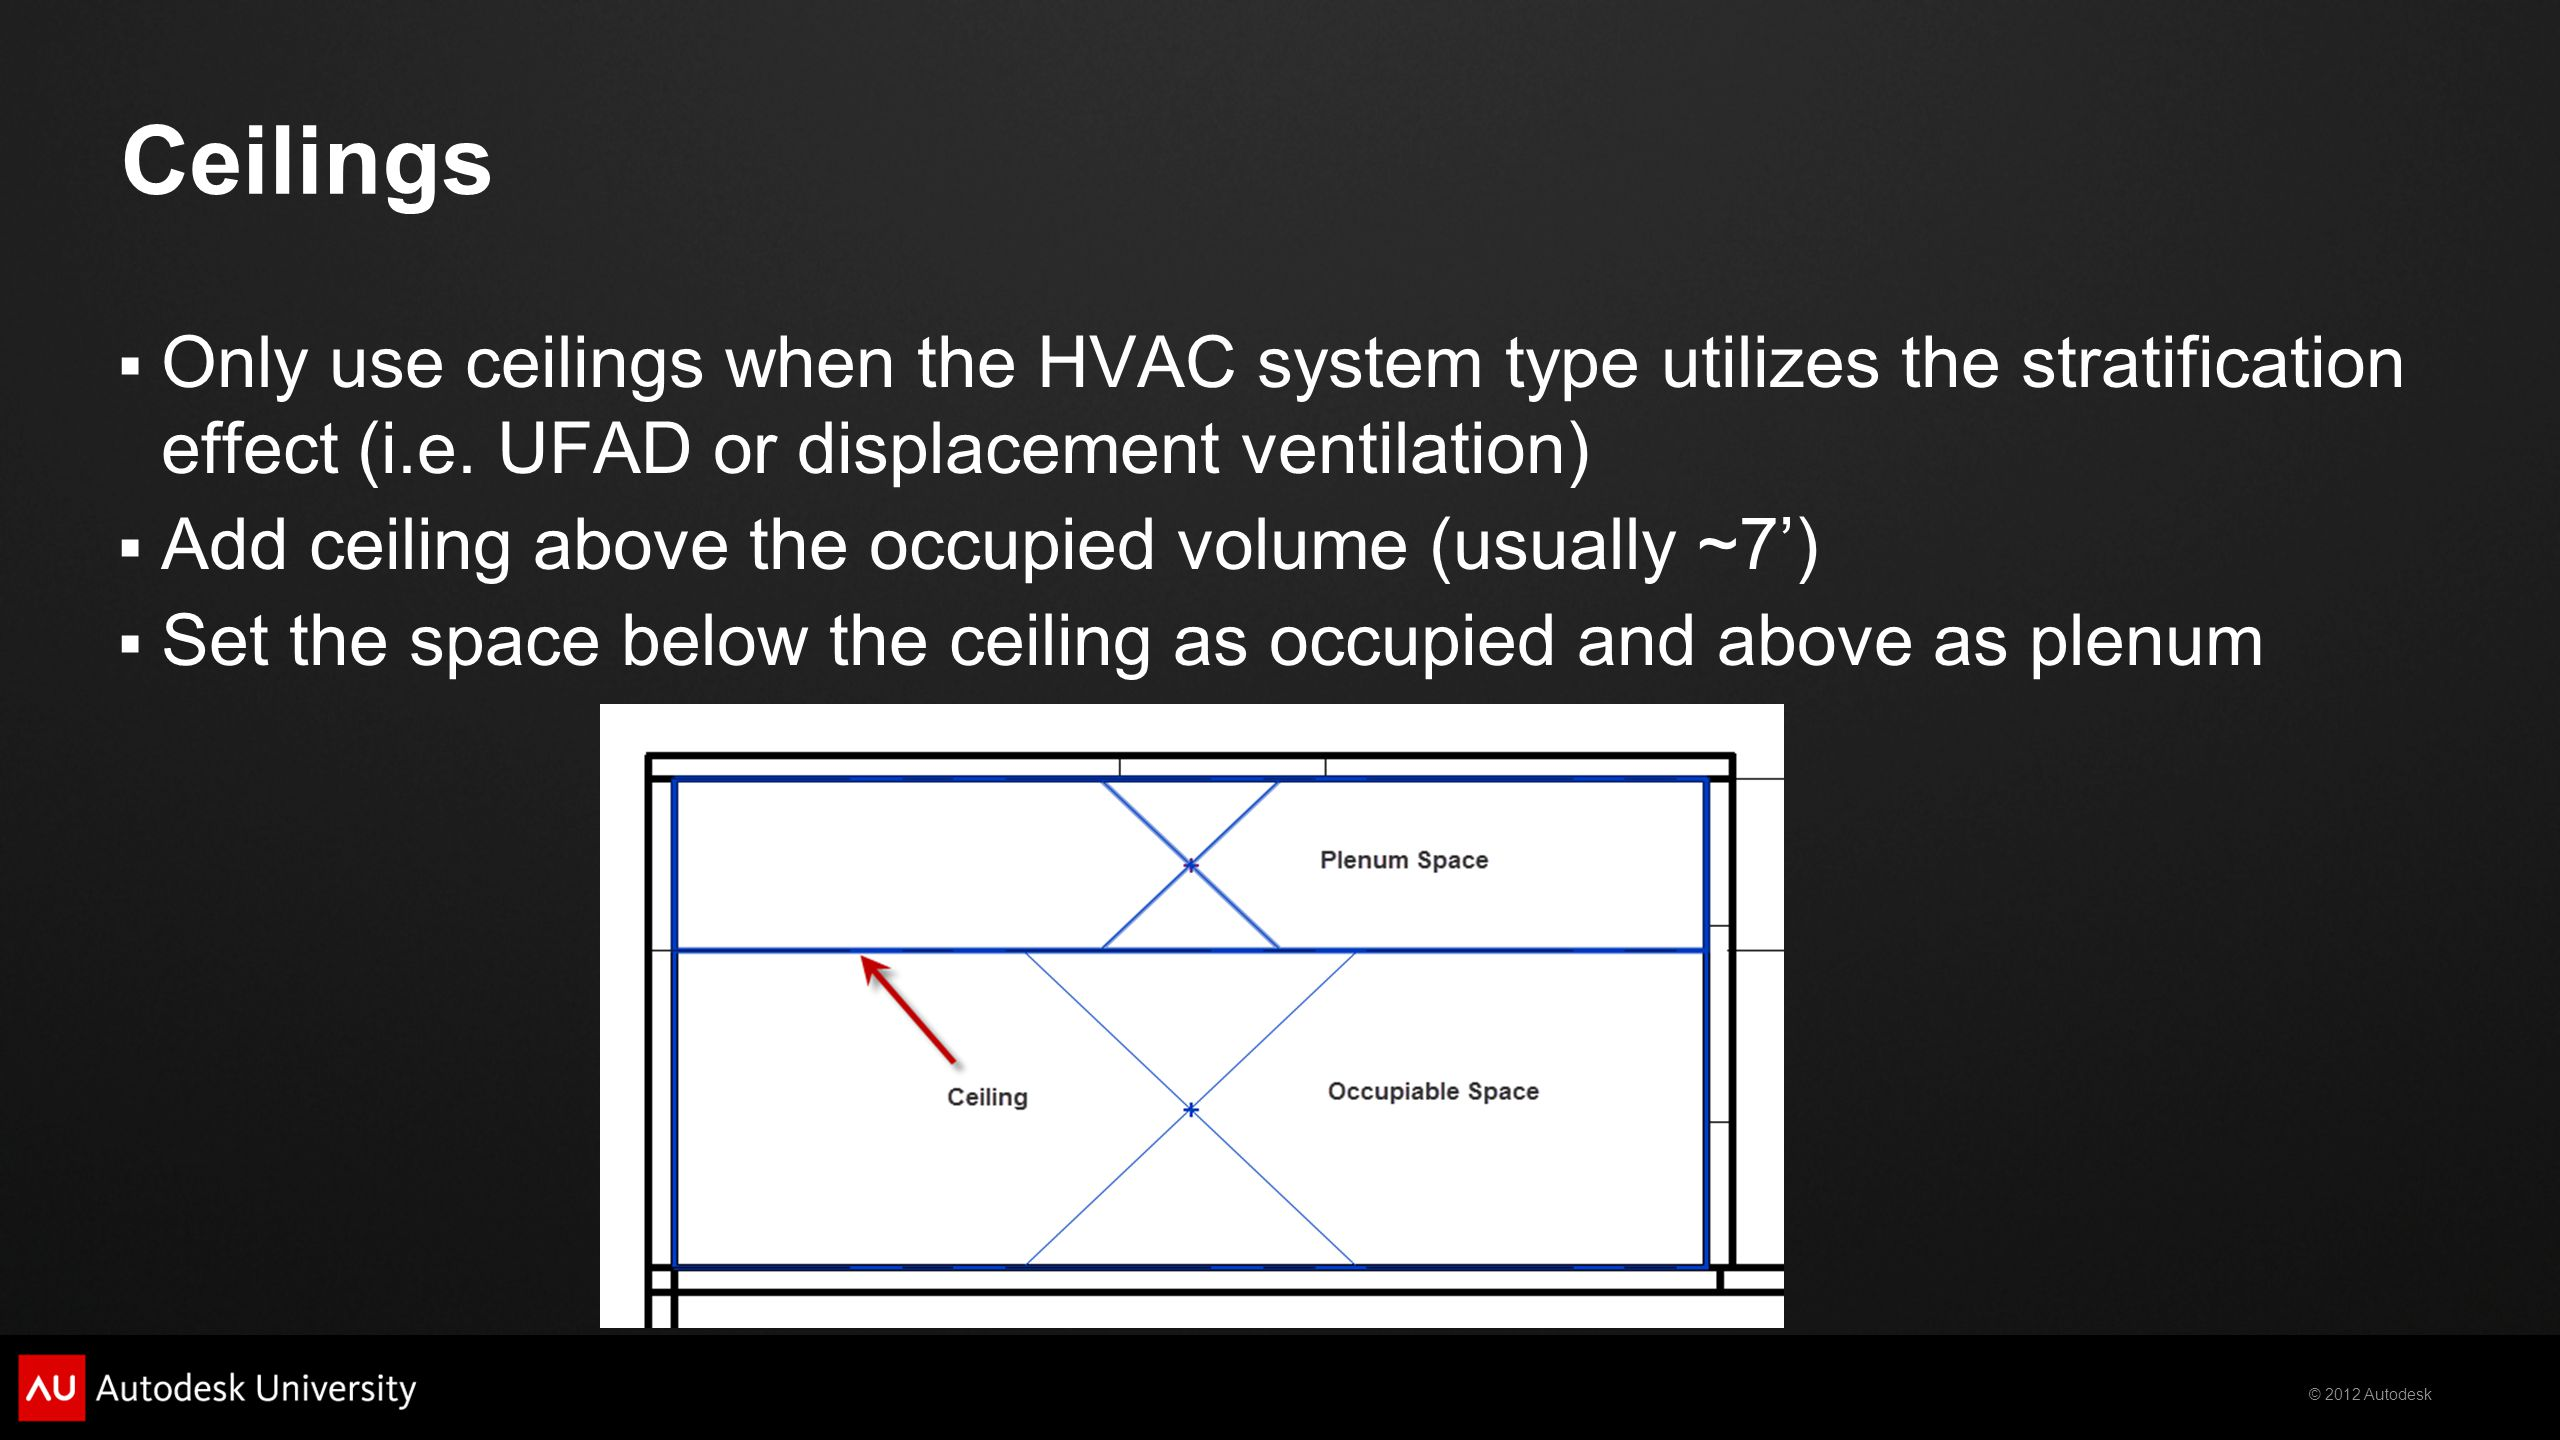 Ceilings Only use ceilings when the HVAC system type utilizes the stratification effect (i.e. UFAD or displacement ventilation)